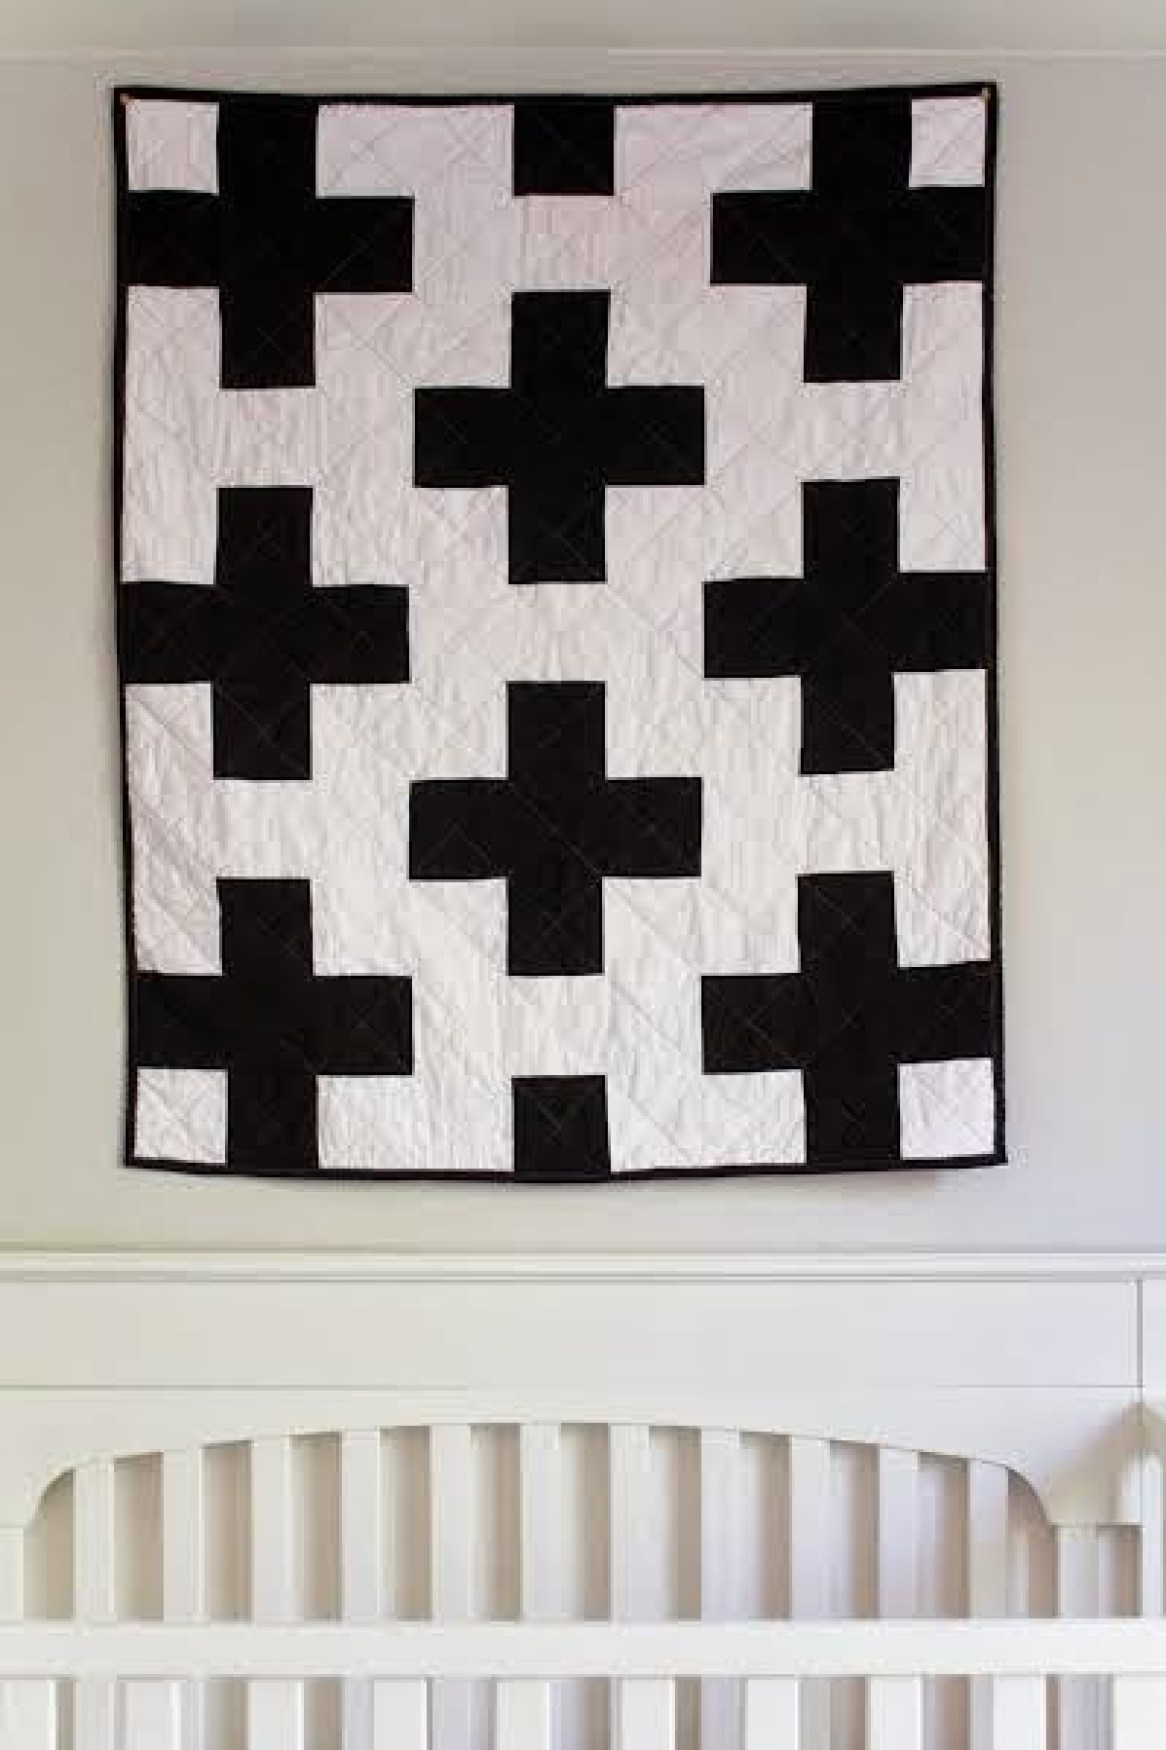 10 Free Modern Quilt Patterns For Beginners! - The Easiest Quilt in the World - from Southern Fabric Blog